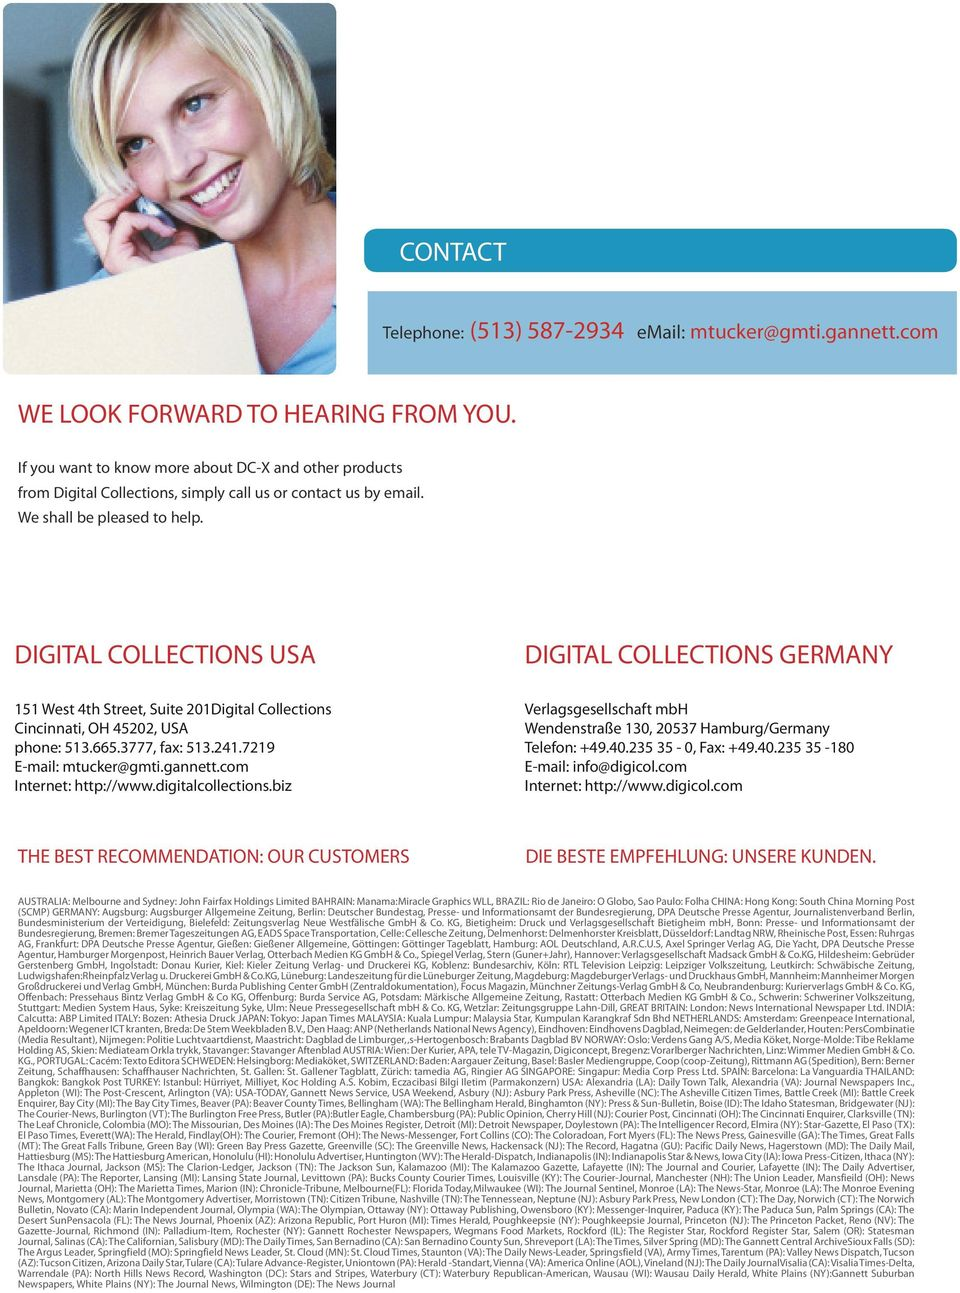 DIGITAL COLLECTIONS USA DIGITAL COLLECTIONS GERMANY 151 West 4th Street, Suite 201Digital Collections Verlagsgesellschaft mbh Cincinnati, OH 45202, USA Wendenstraße 130, 20537 Hamburg/Germany phone: